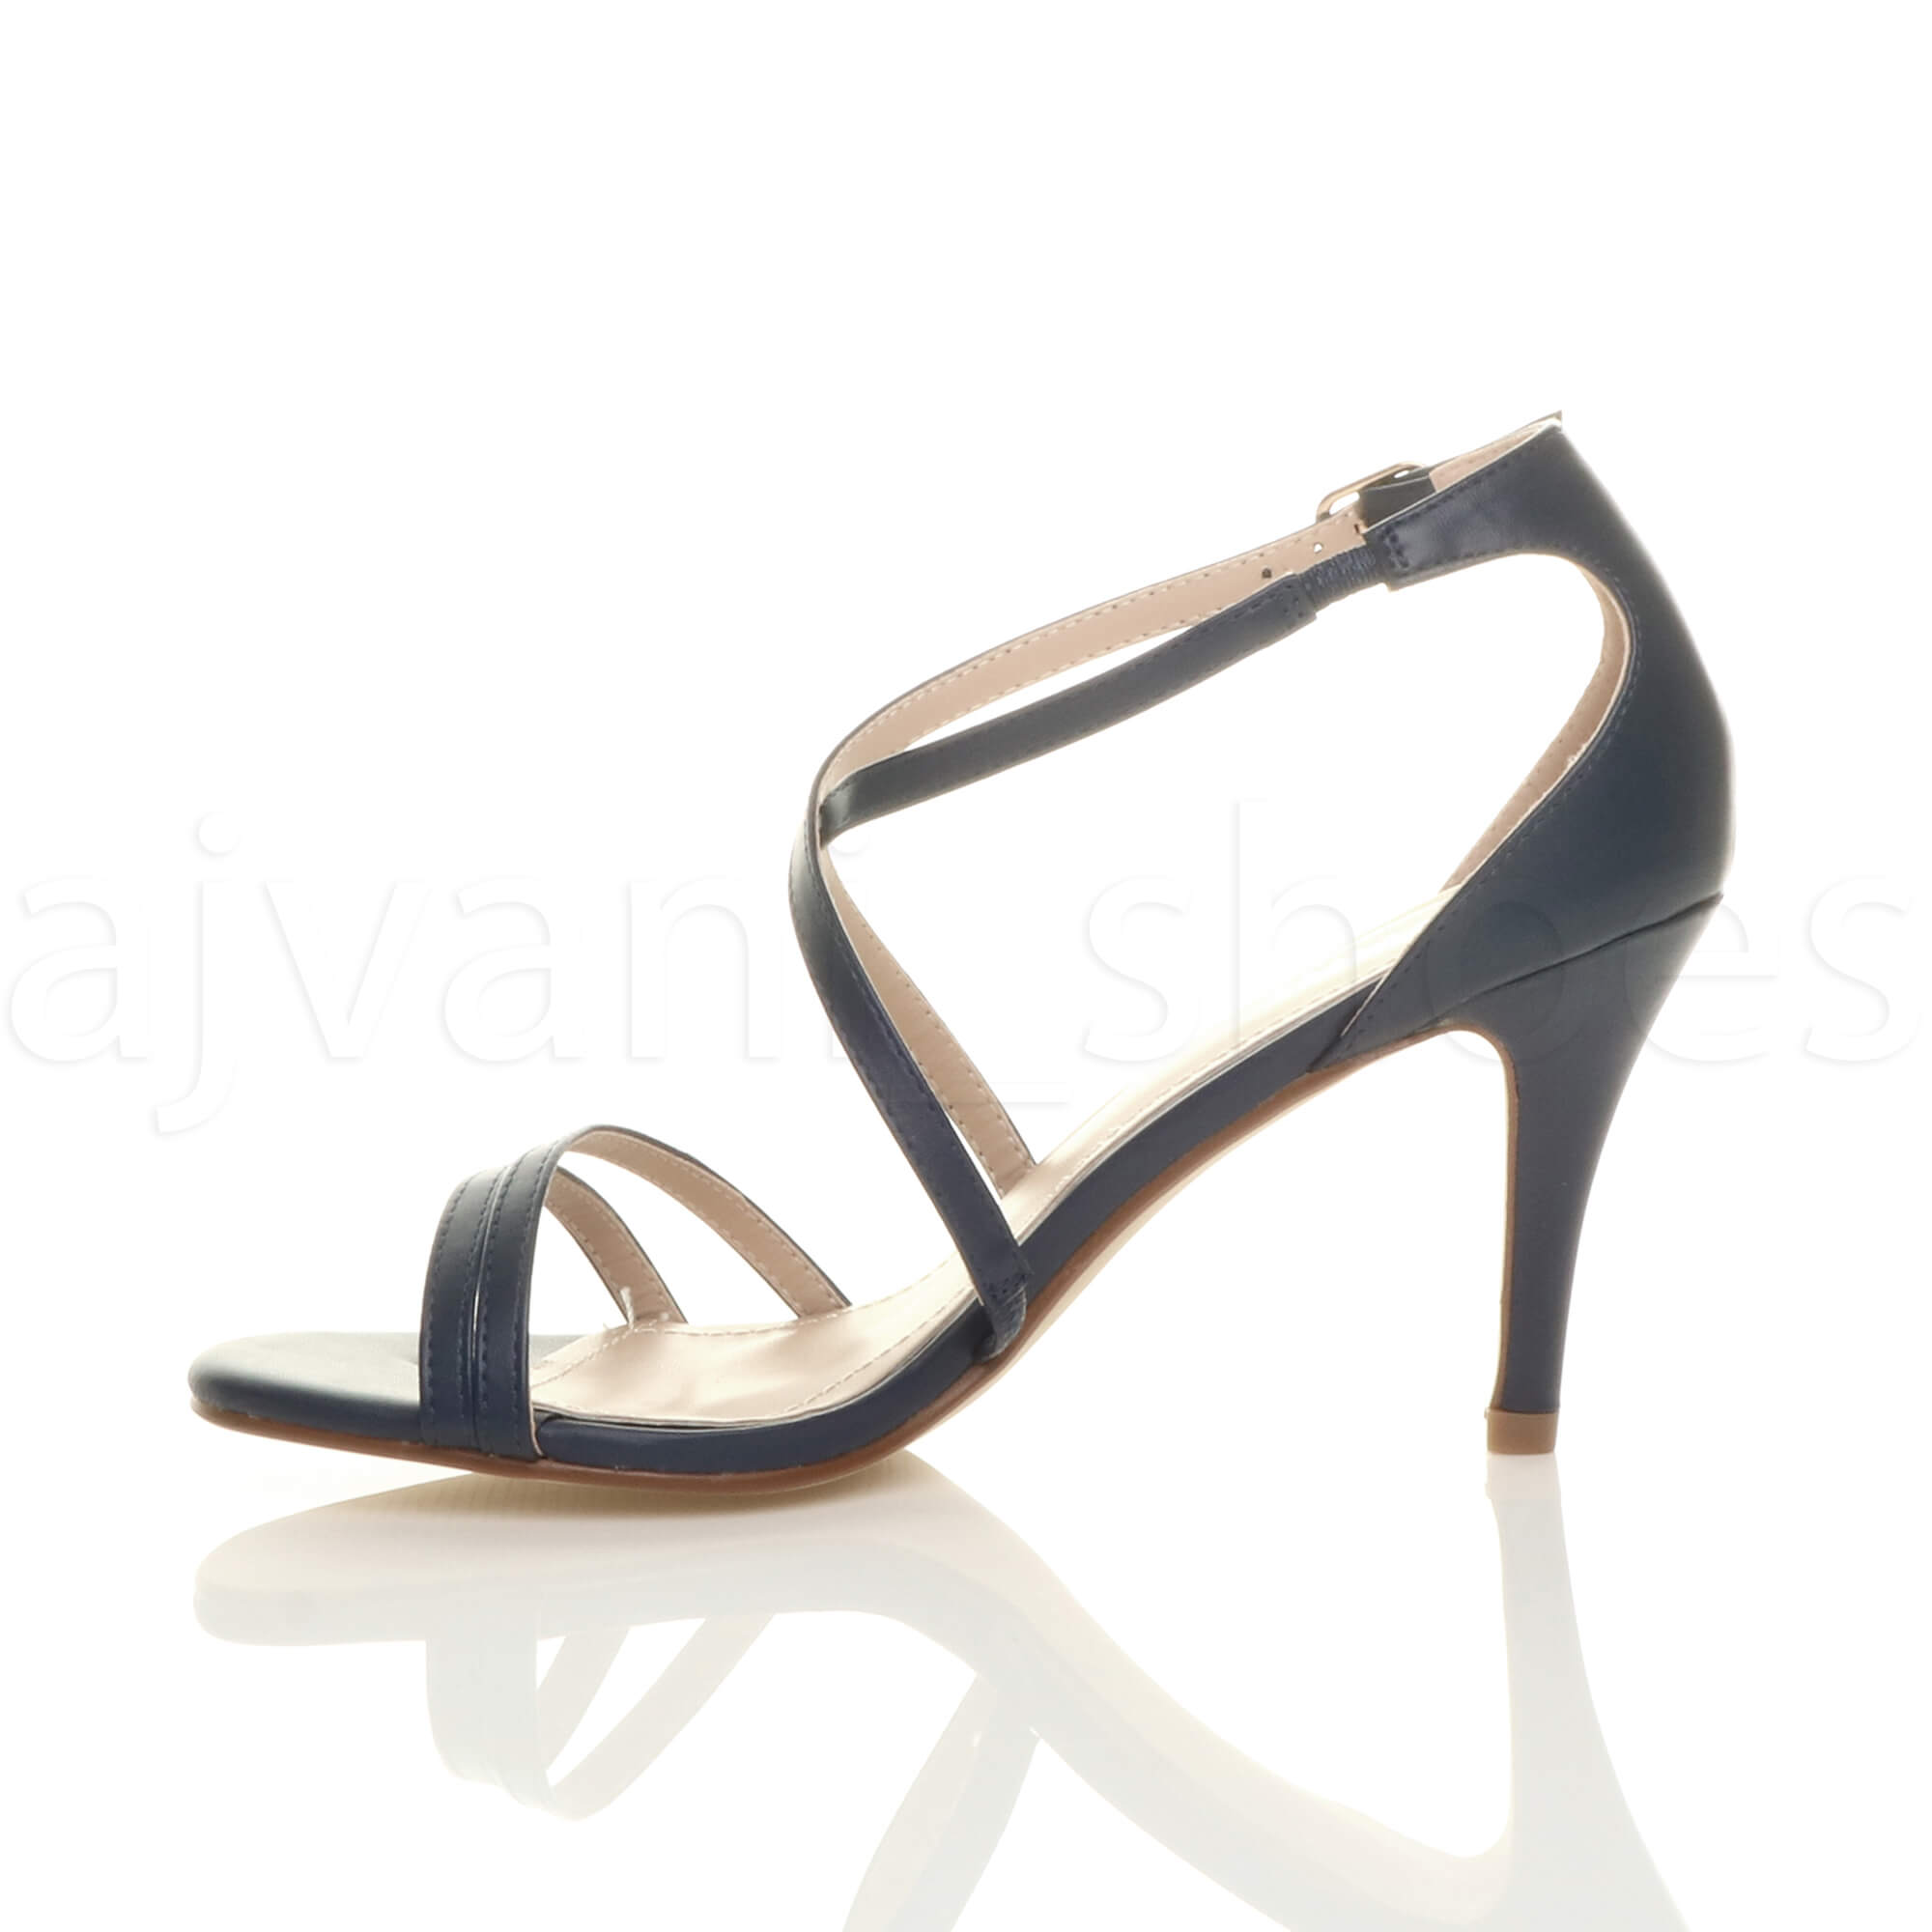 WOMENS-LADIES-MID-HIGH-HEEL-STRAPPY-CROSSOVER-WEDDING-PROM-SANDALS-SHOES-SIZE thumbnail 81